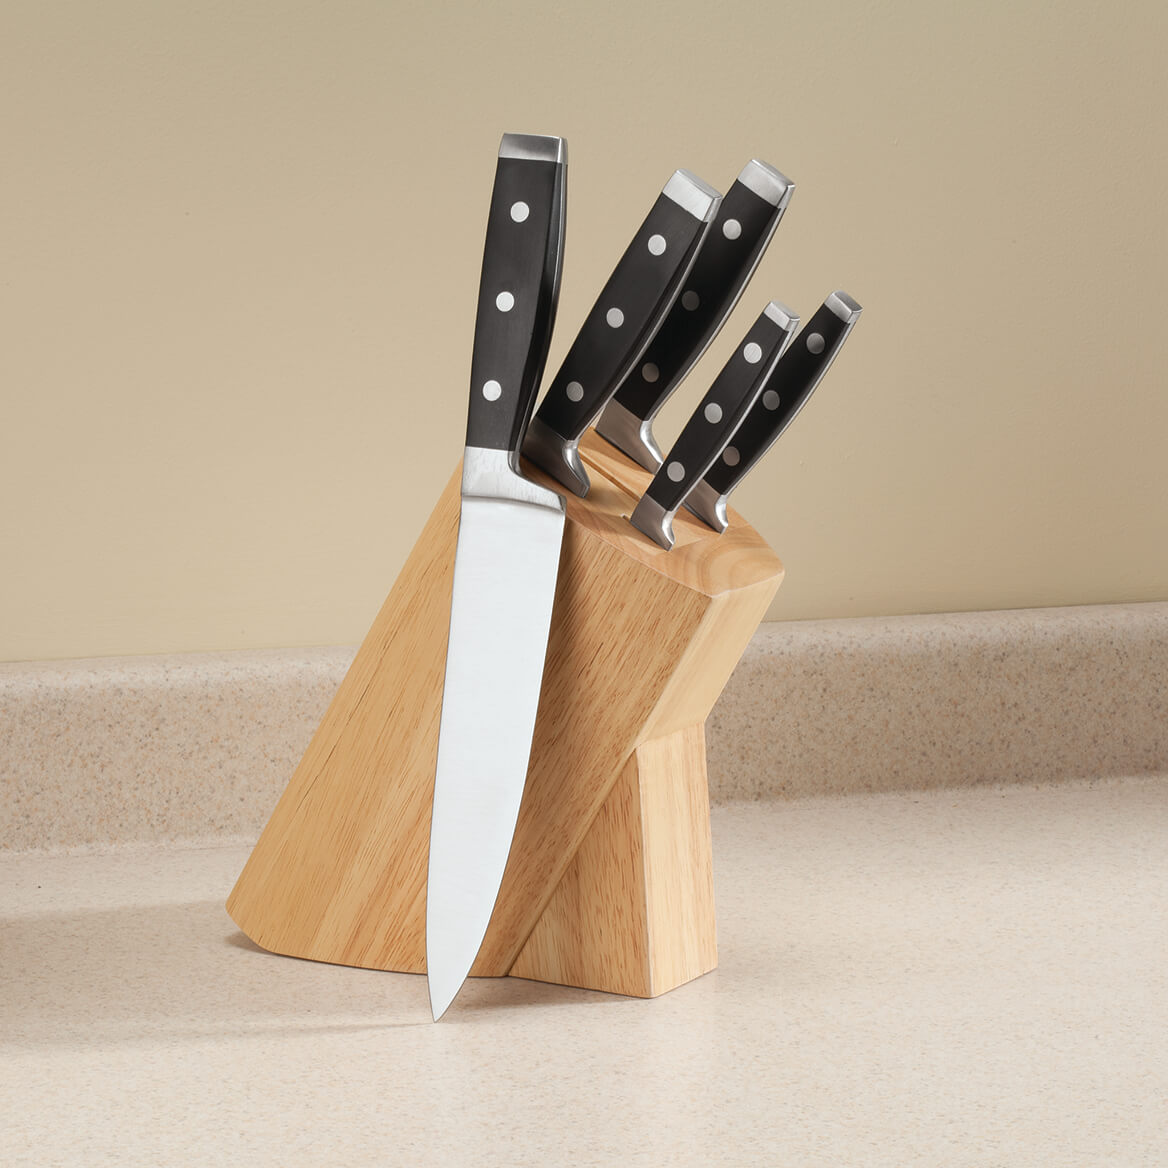 6PC Forged Knife Block Set by Home Marketplace-362758